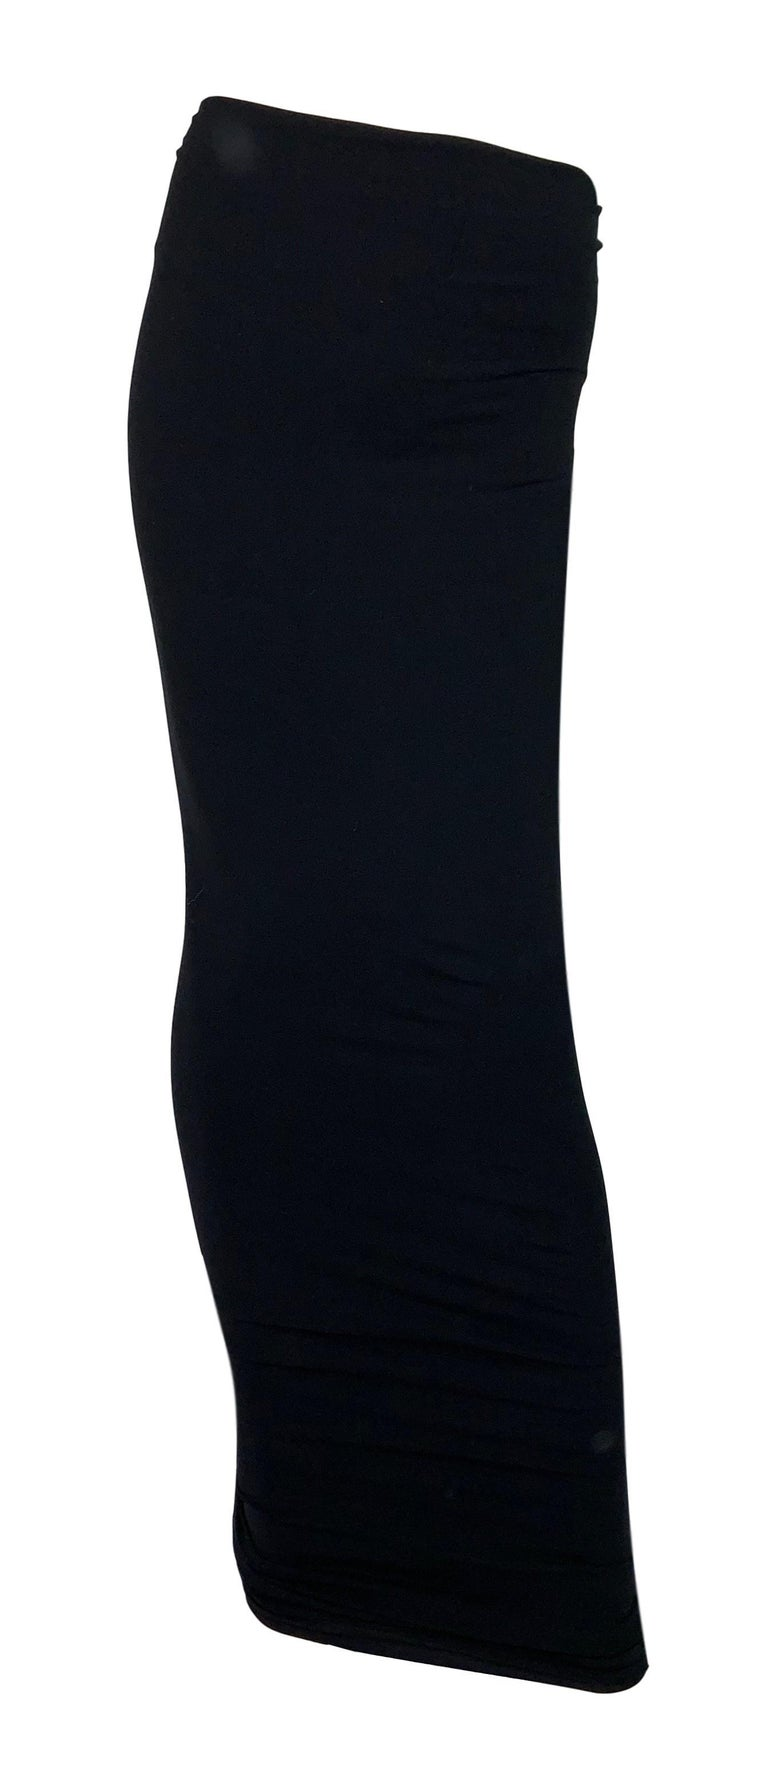 DESIGNER: S/S 2011 Yves Saint Laurent- can be worn as a dress or skirt  Please contact for more information and/or photos.  CONDITION: Good  COUNTRY MADE: Italy  FABRIC: Nylon  SIZE: M has a lot of stretch  MEASUREMENTS; provided as a courtesy only-